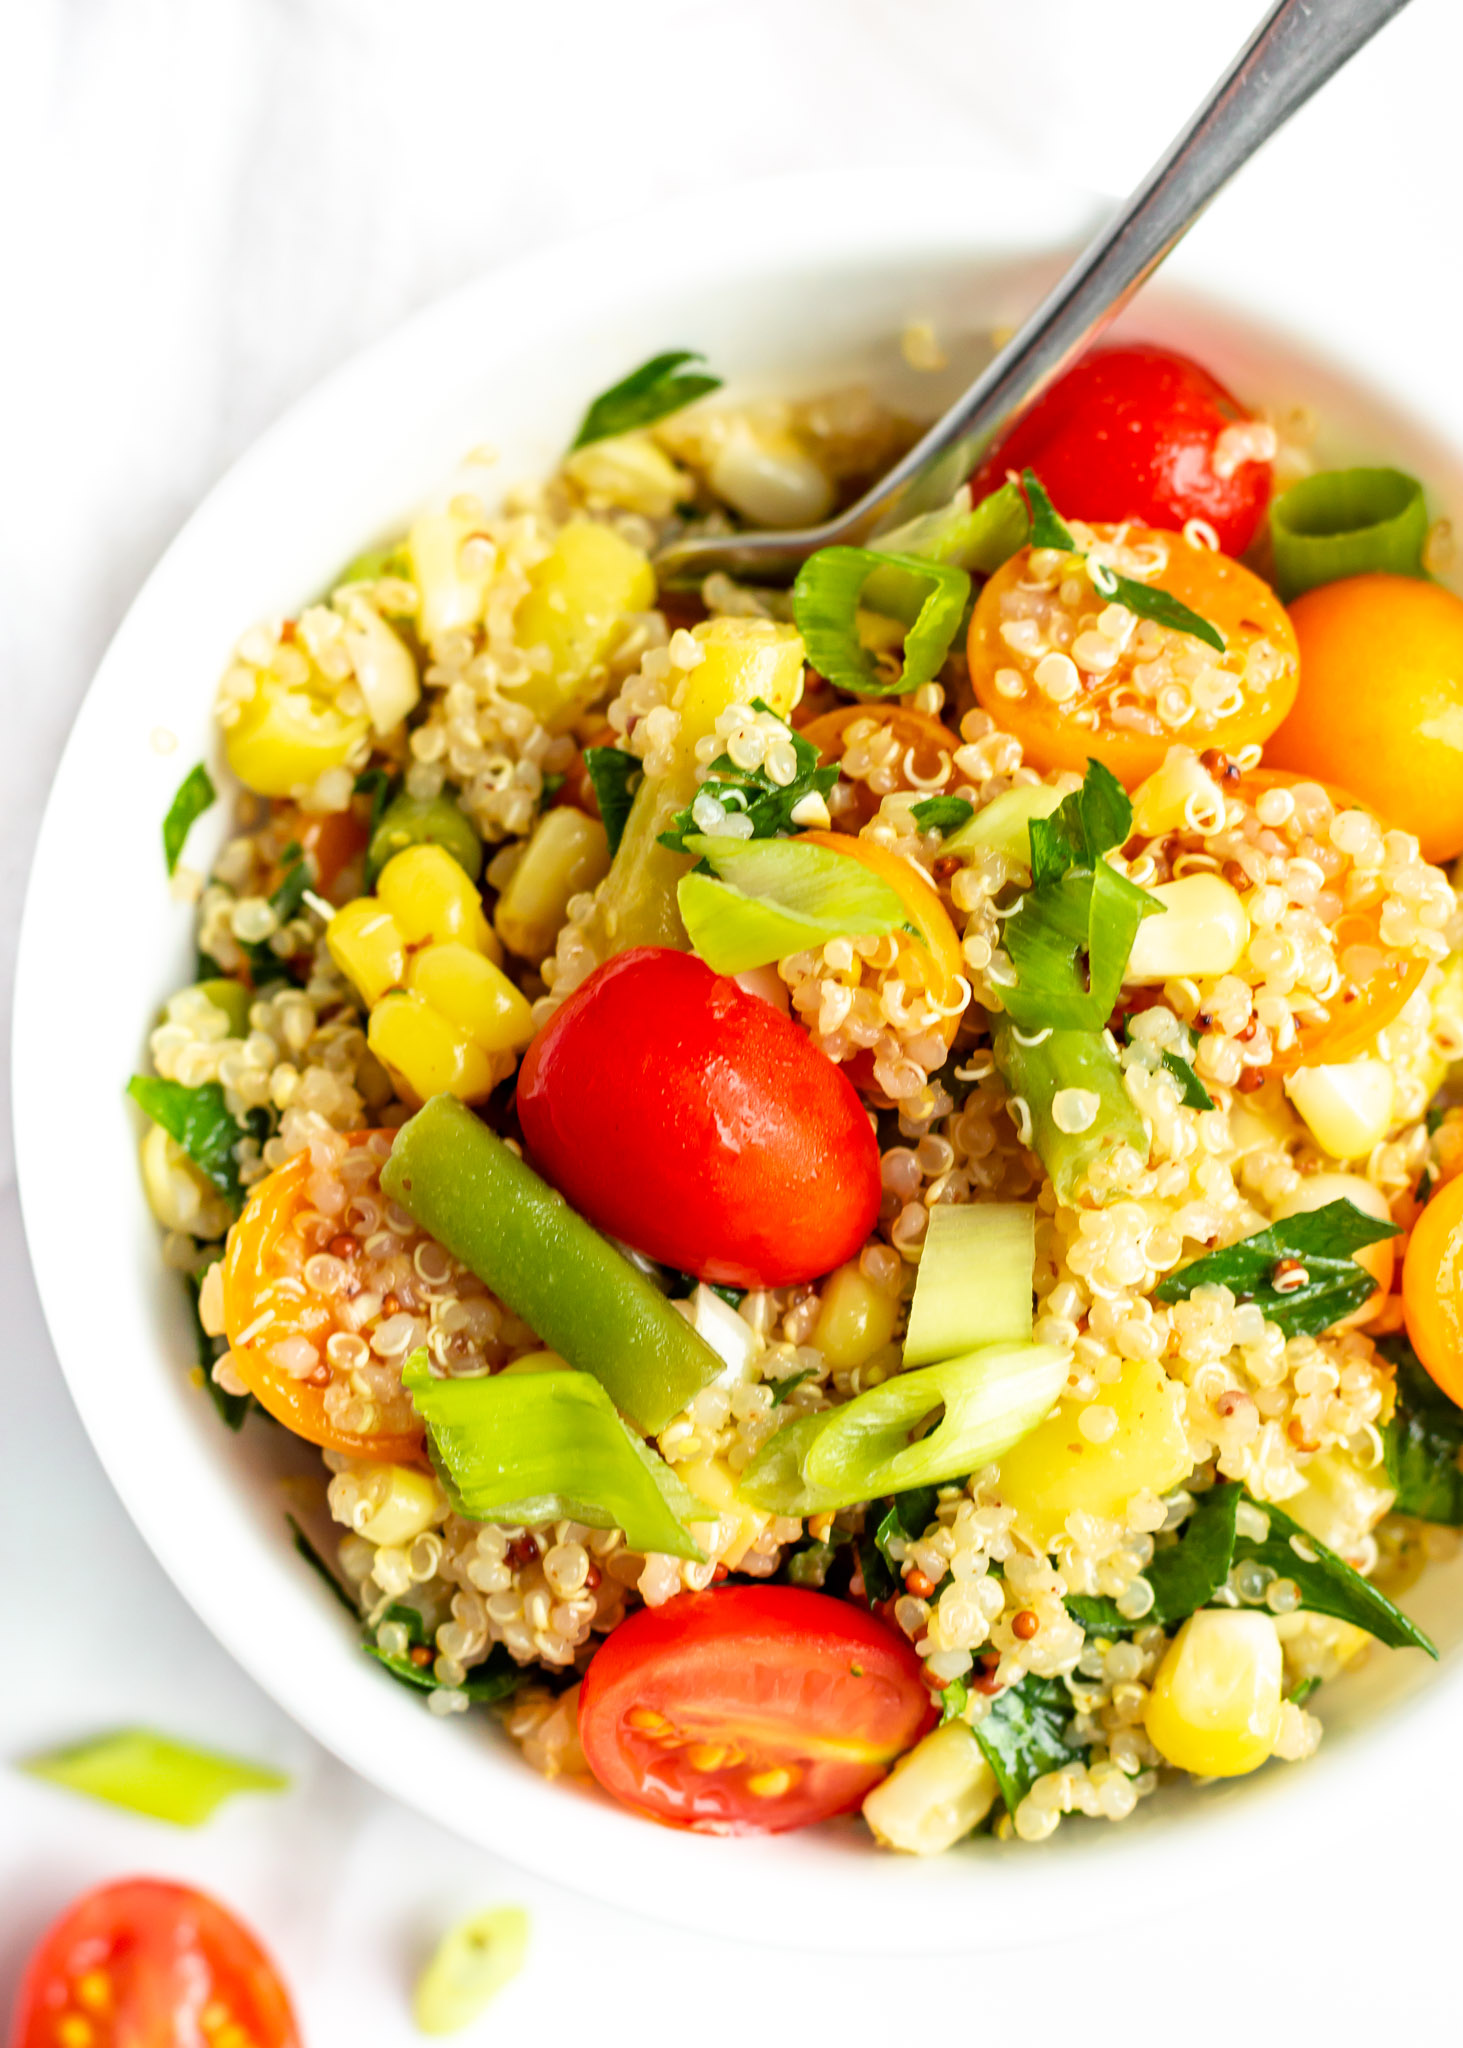 A Summery Vegan Quinoa Salad recipe perfect for lunch every day of the week. This easy summer-inspired salad is made with fresh vegetables, like green beans, corn and tomatoes, and a simple sweet Dijon dressing that is delicious served warm or cold. Give this clean eating, meal prep recipe a try!